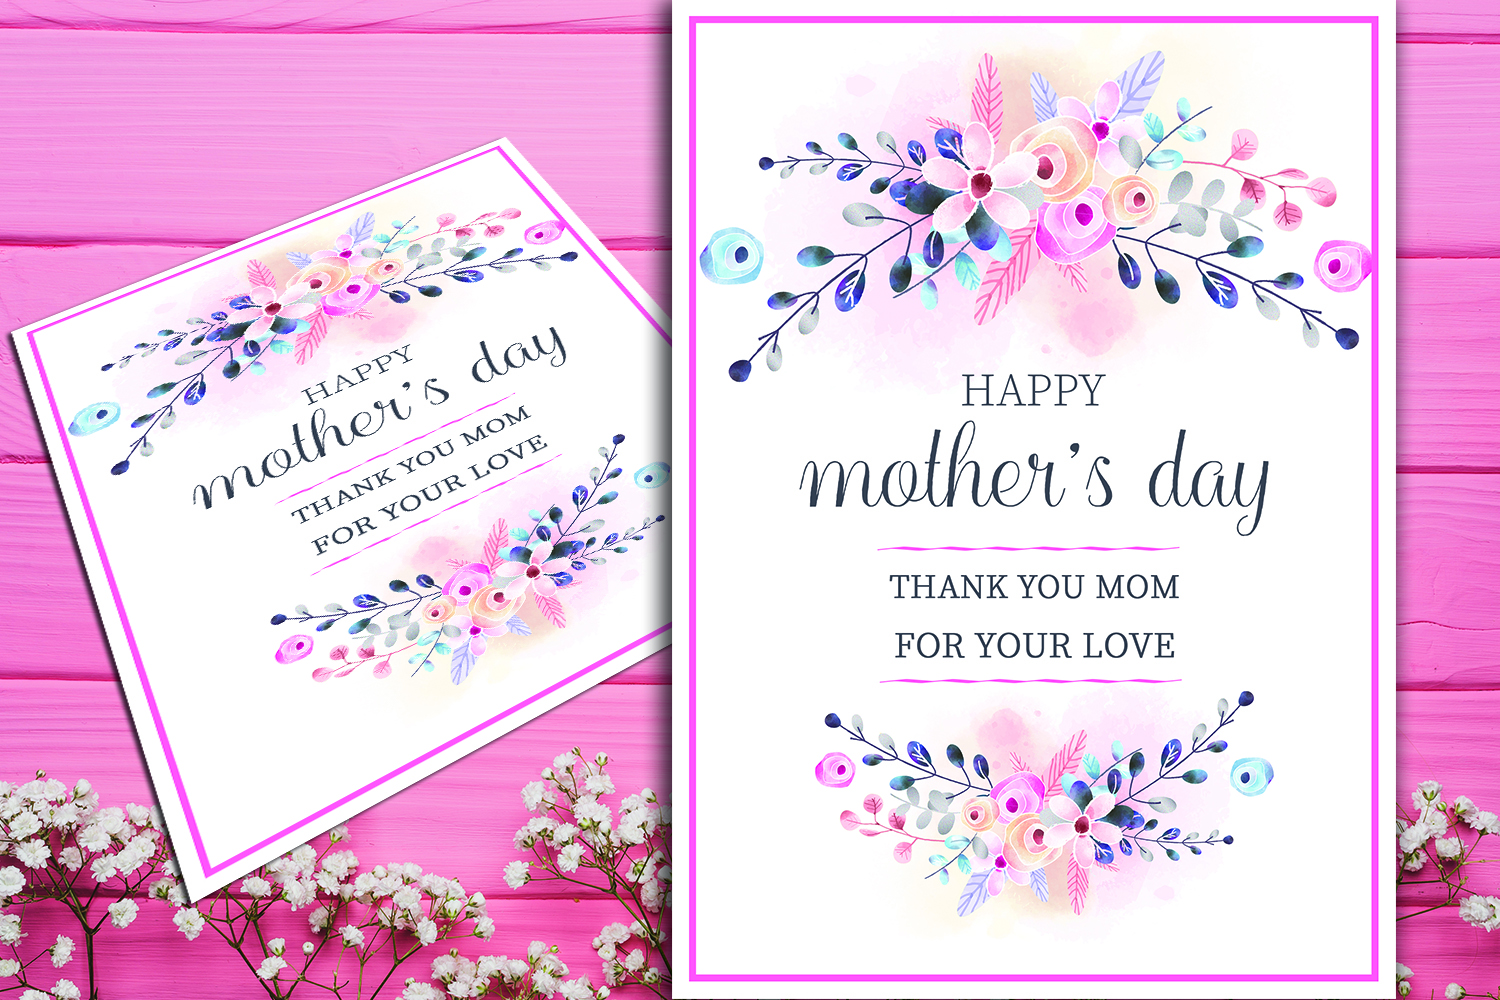 Floral mothers day greeting card floral mothers day greeting card example image 1 m4hsunfo